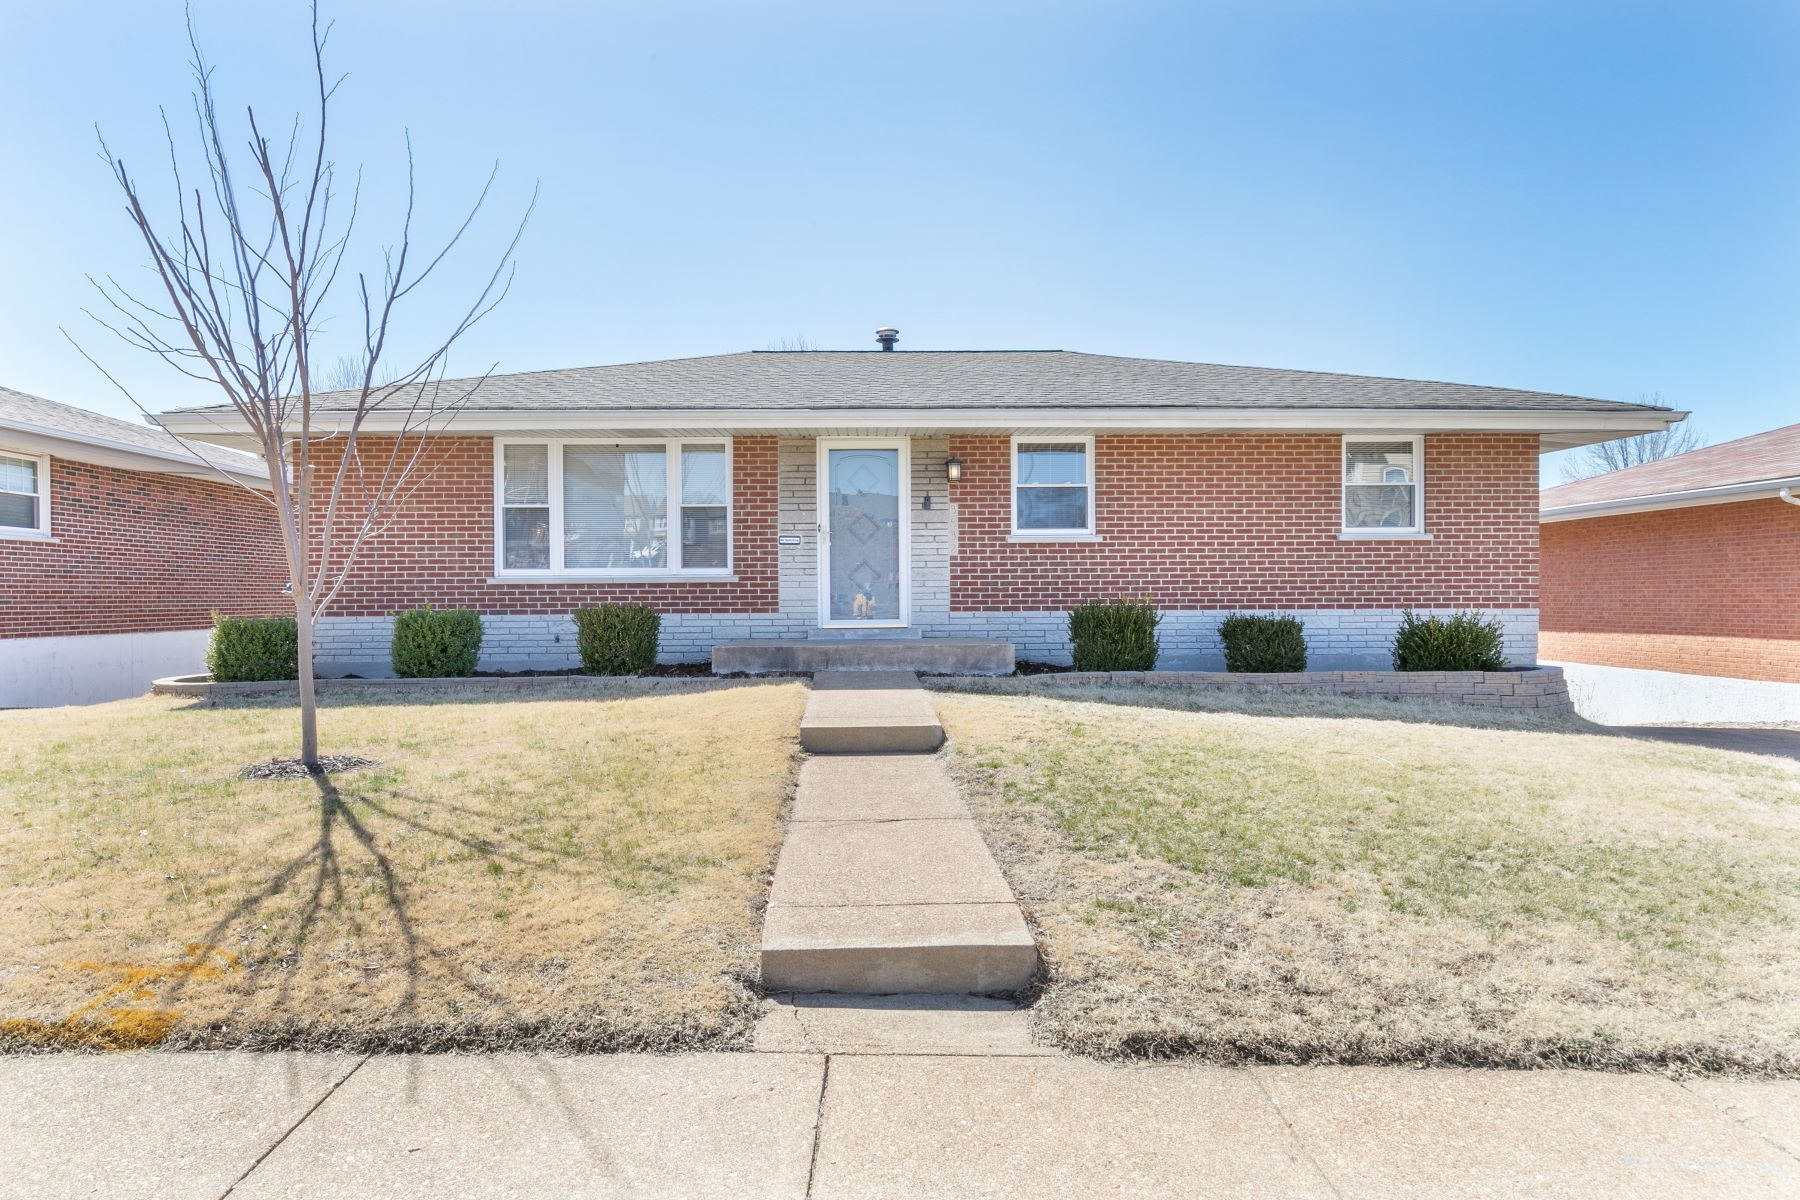 Single Family Home for Sale at 3832 Robert Avenue, St. Louis, MO 63116 3832 Robert Avenue St. Louis, Missouri 63116 United States